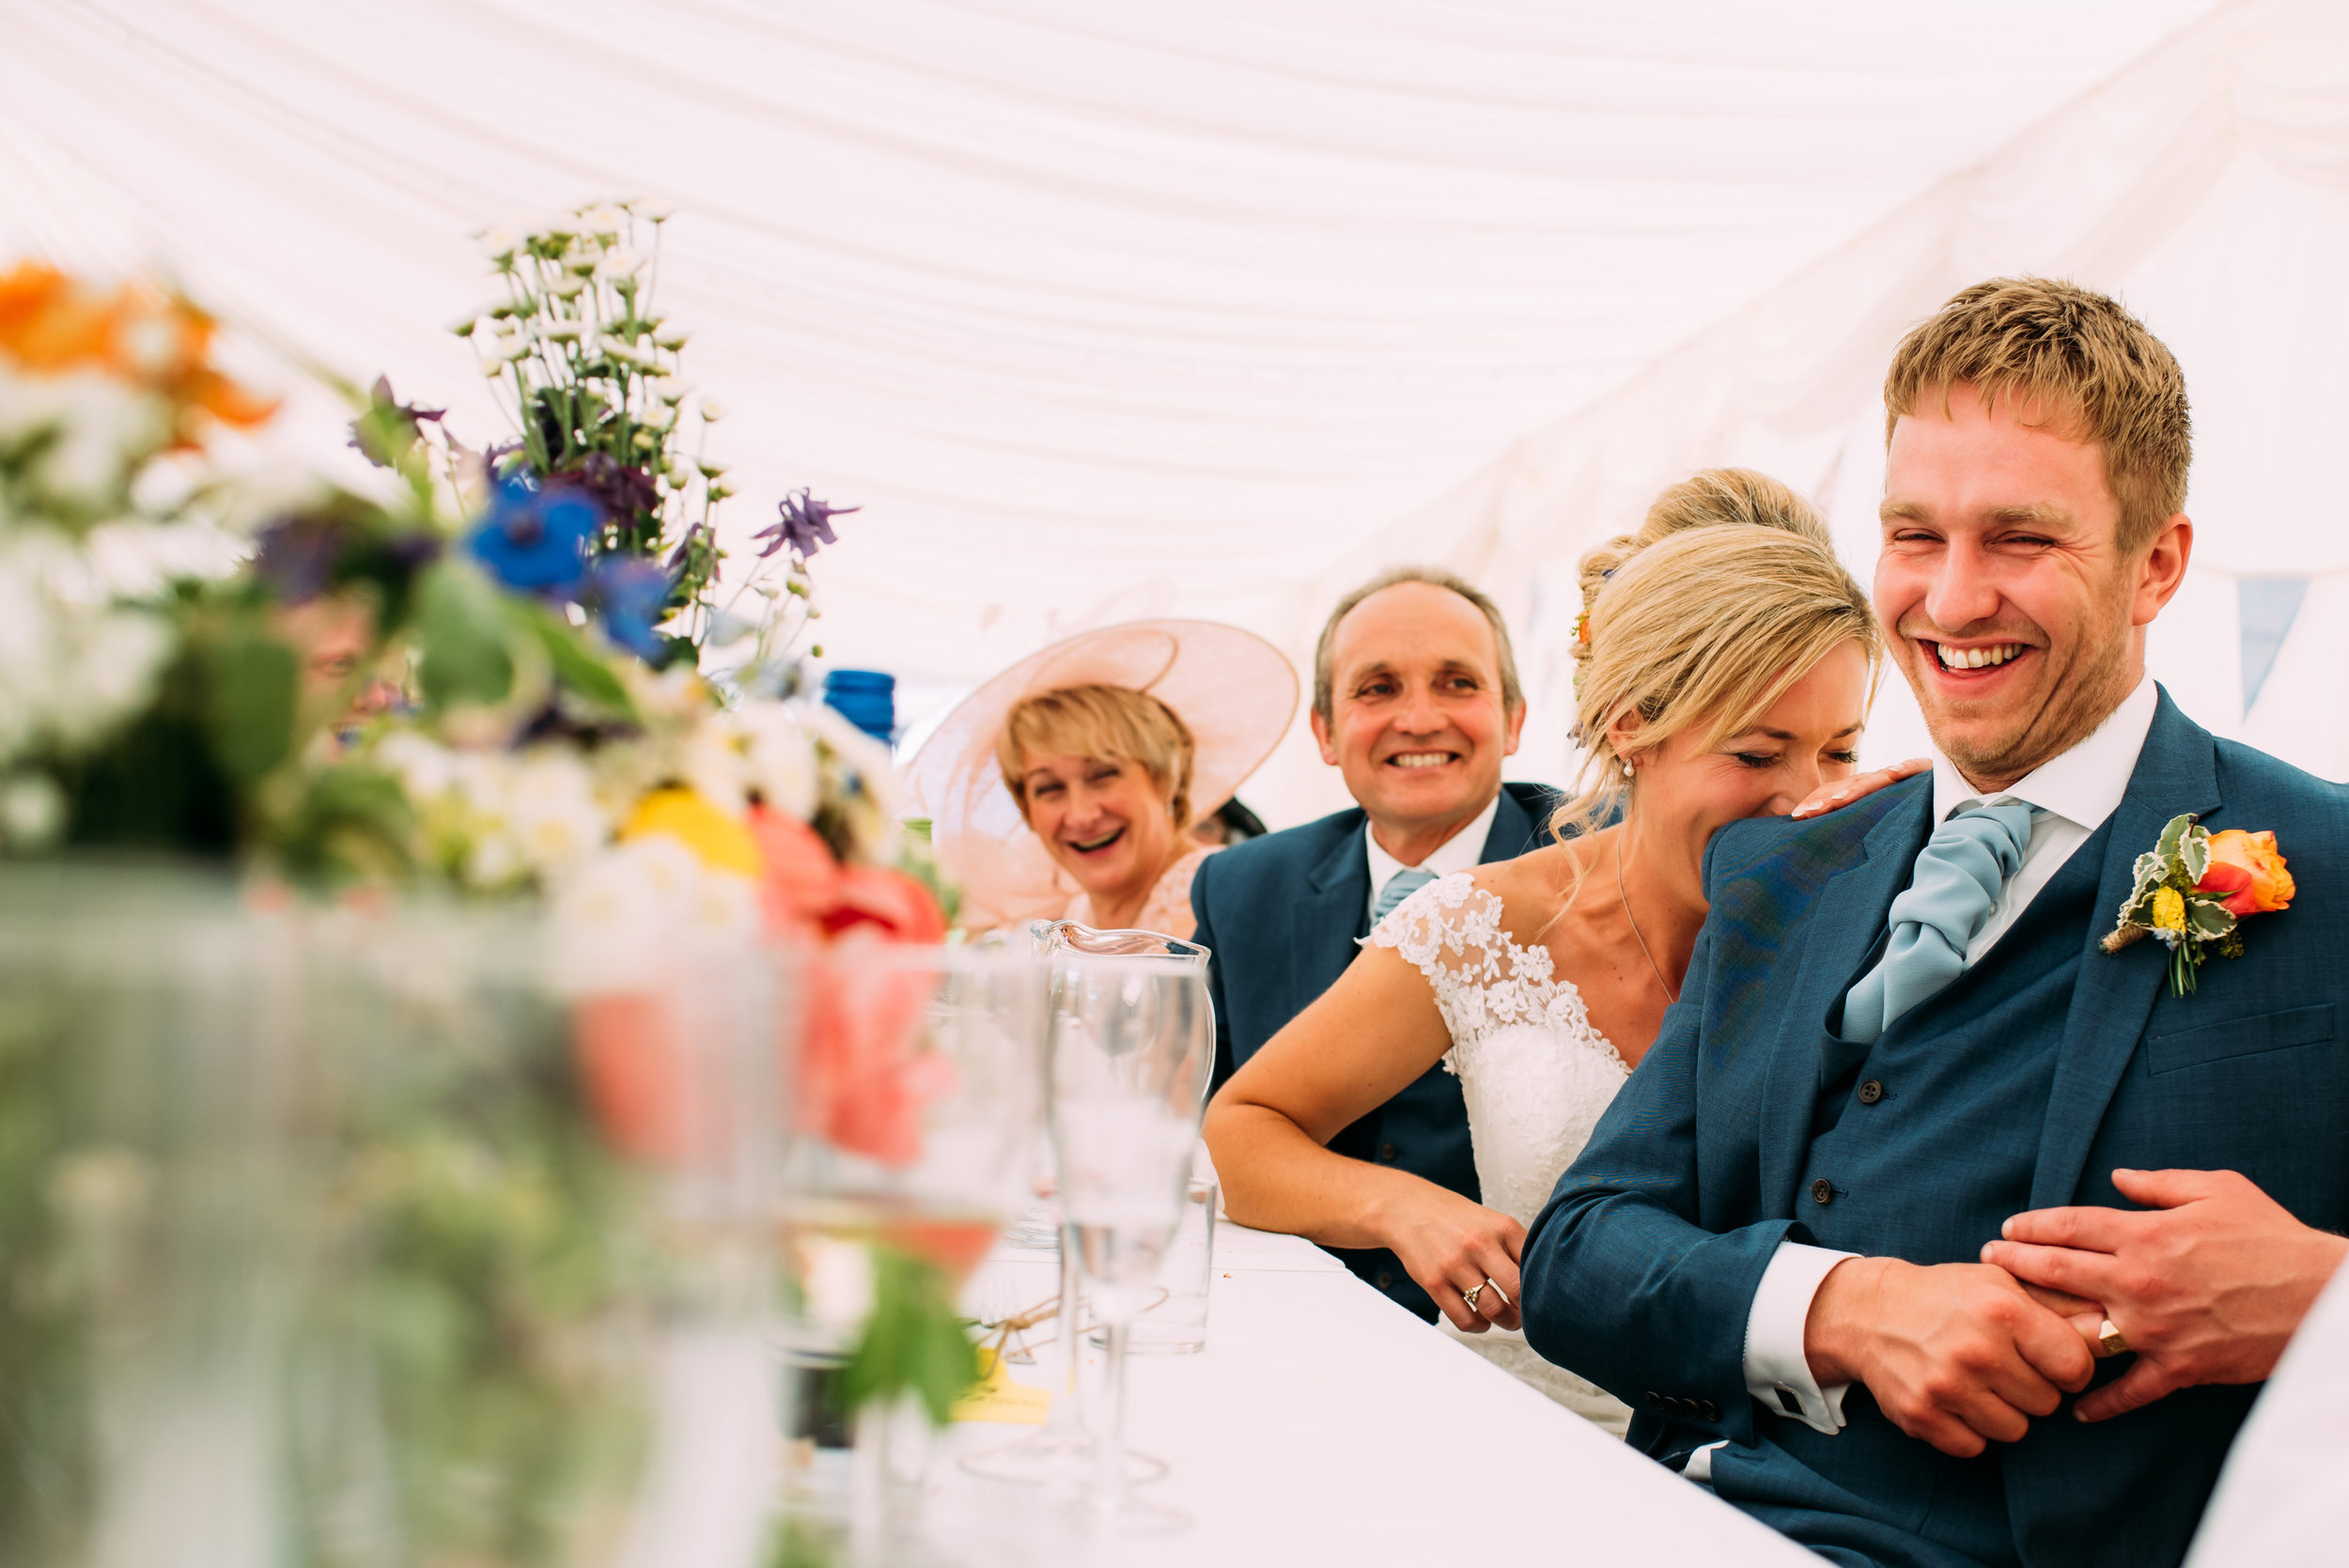 the bride laughs on the grooms shoulder during the speeches